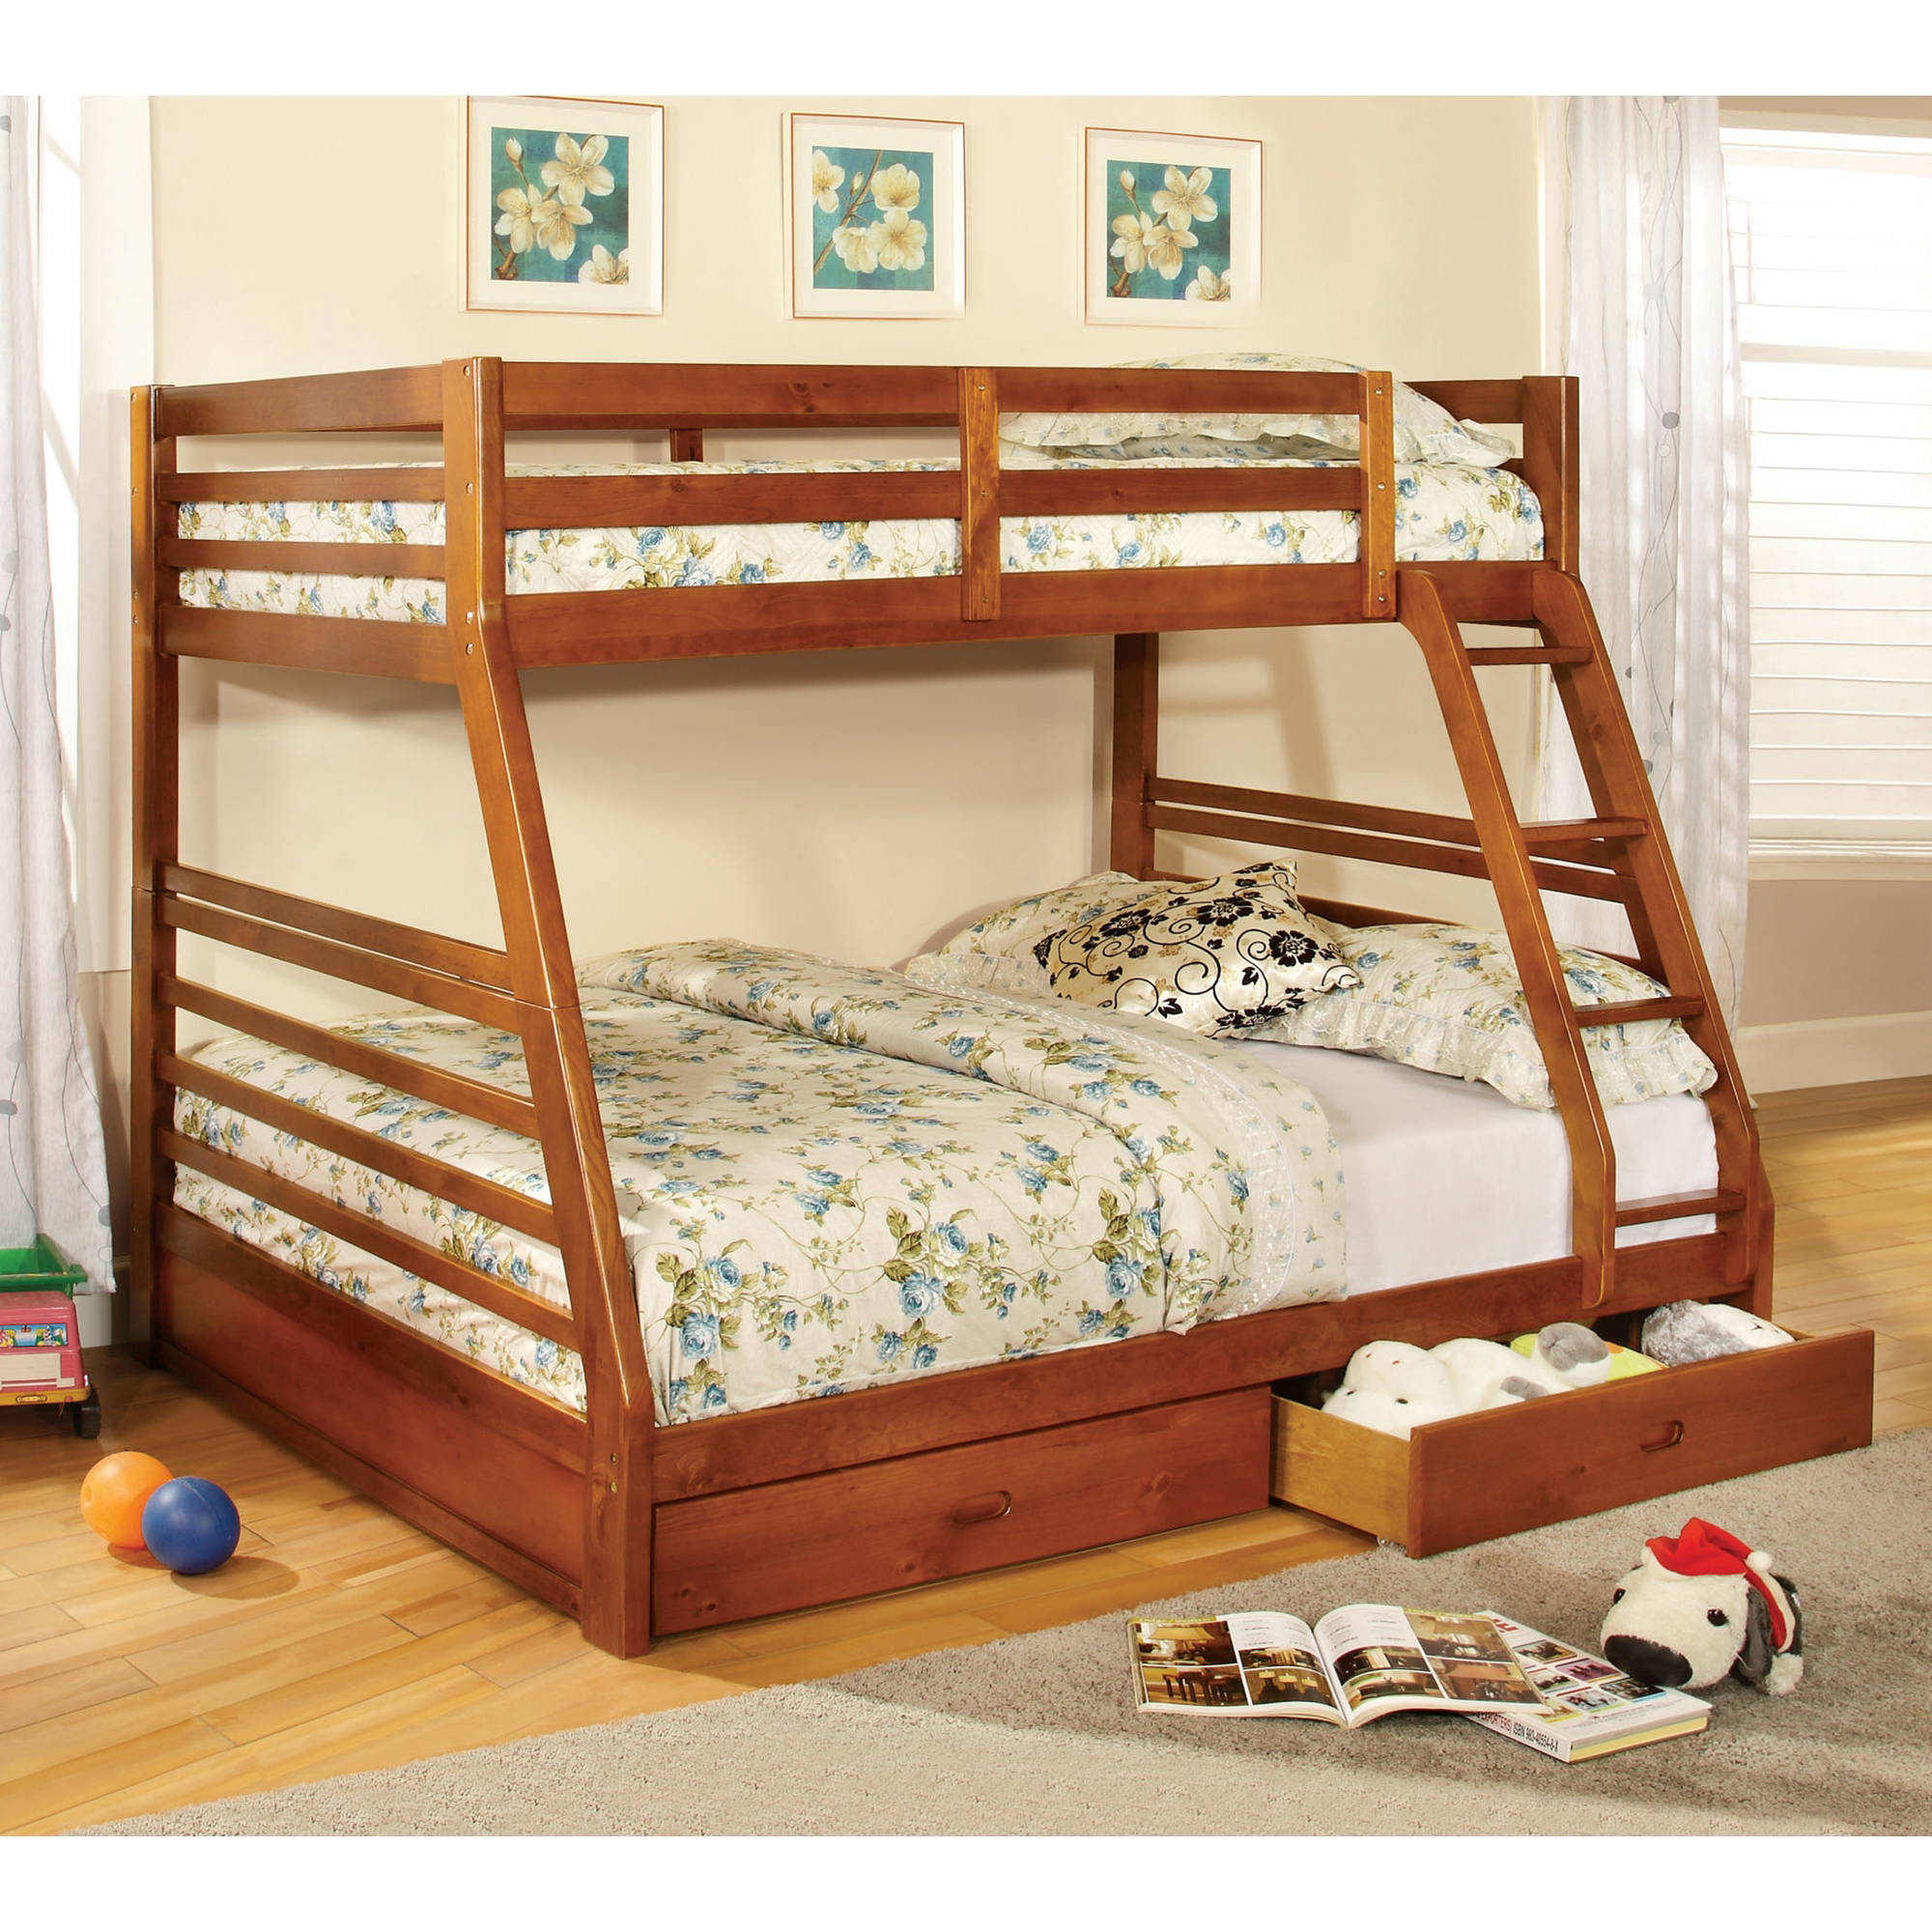 Furniture Of America Luke Twin Over Full Wood Bunk Bed With Drawers